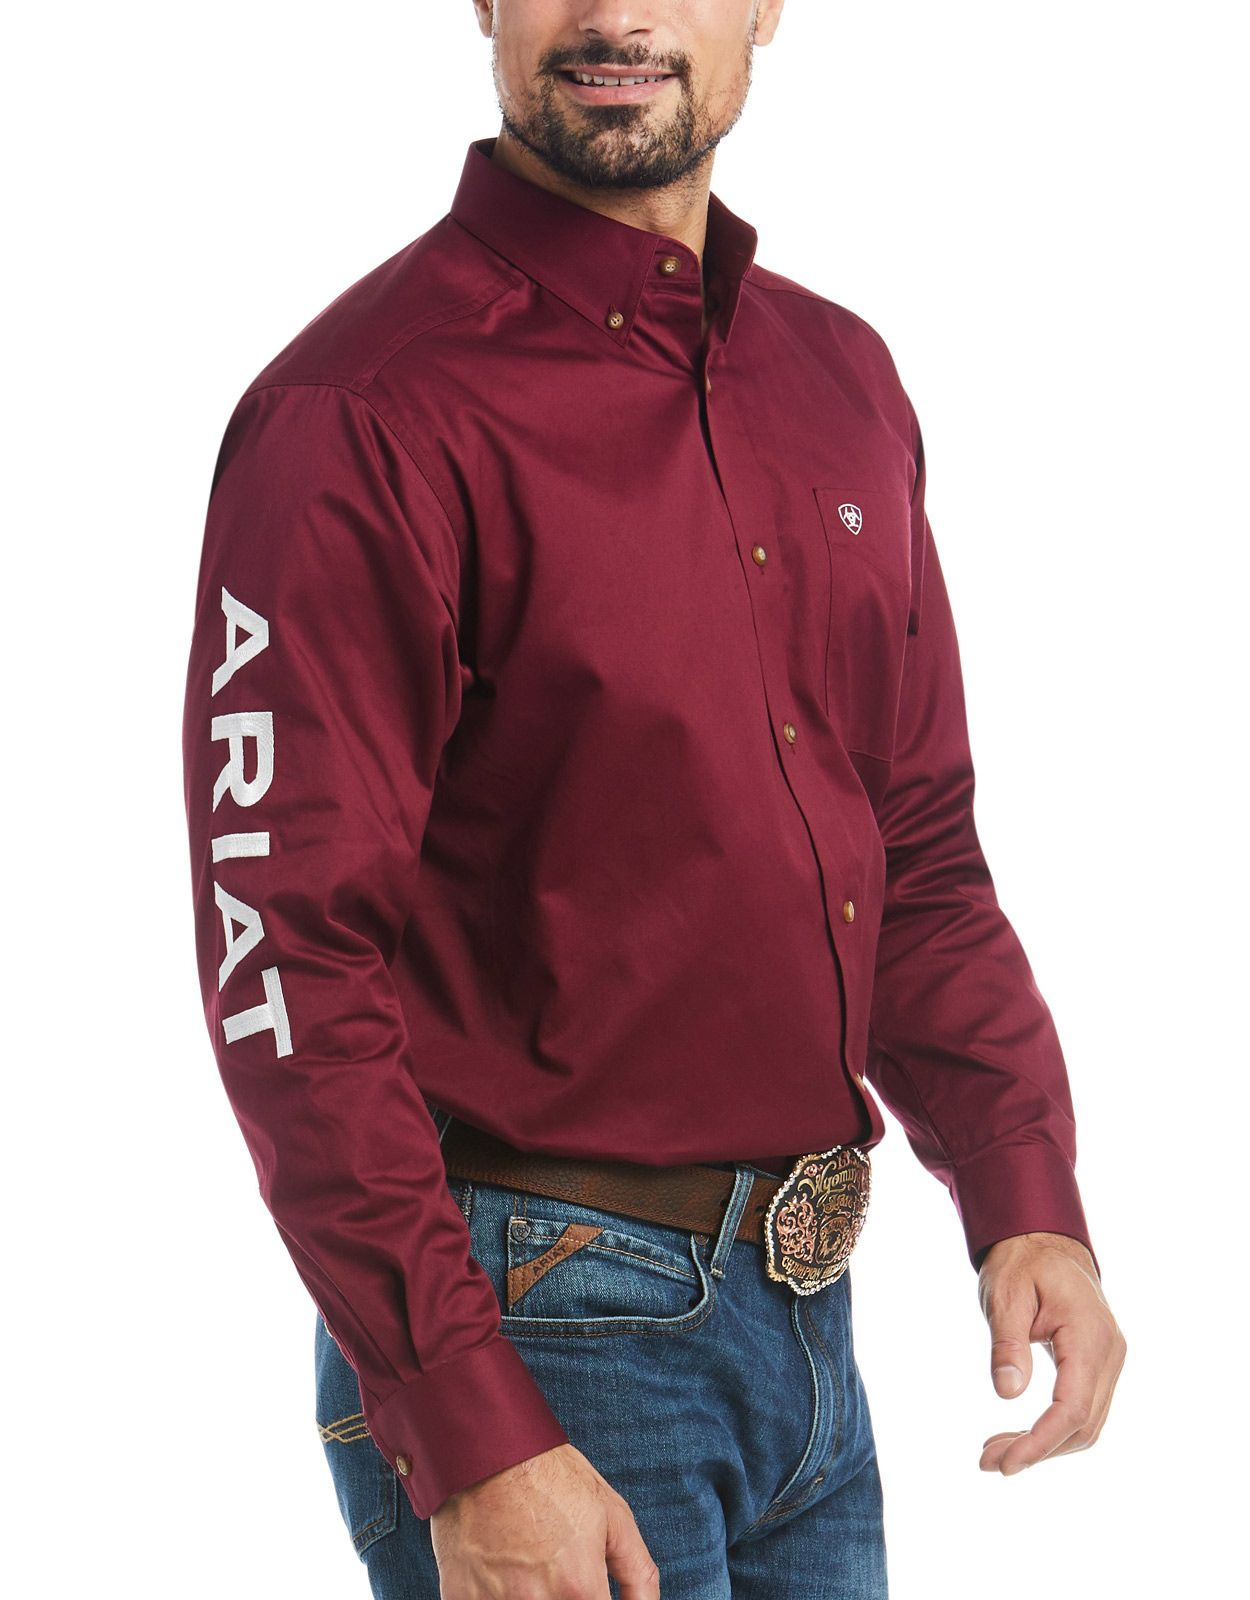 Ariat Men's Casual Series Classic Fit Team Logo Twill Long Sleeve Solid Button Down Shirt - Burgundy/White